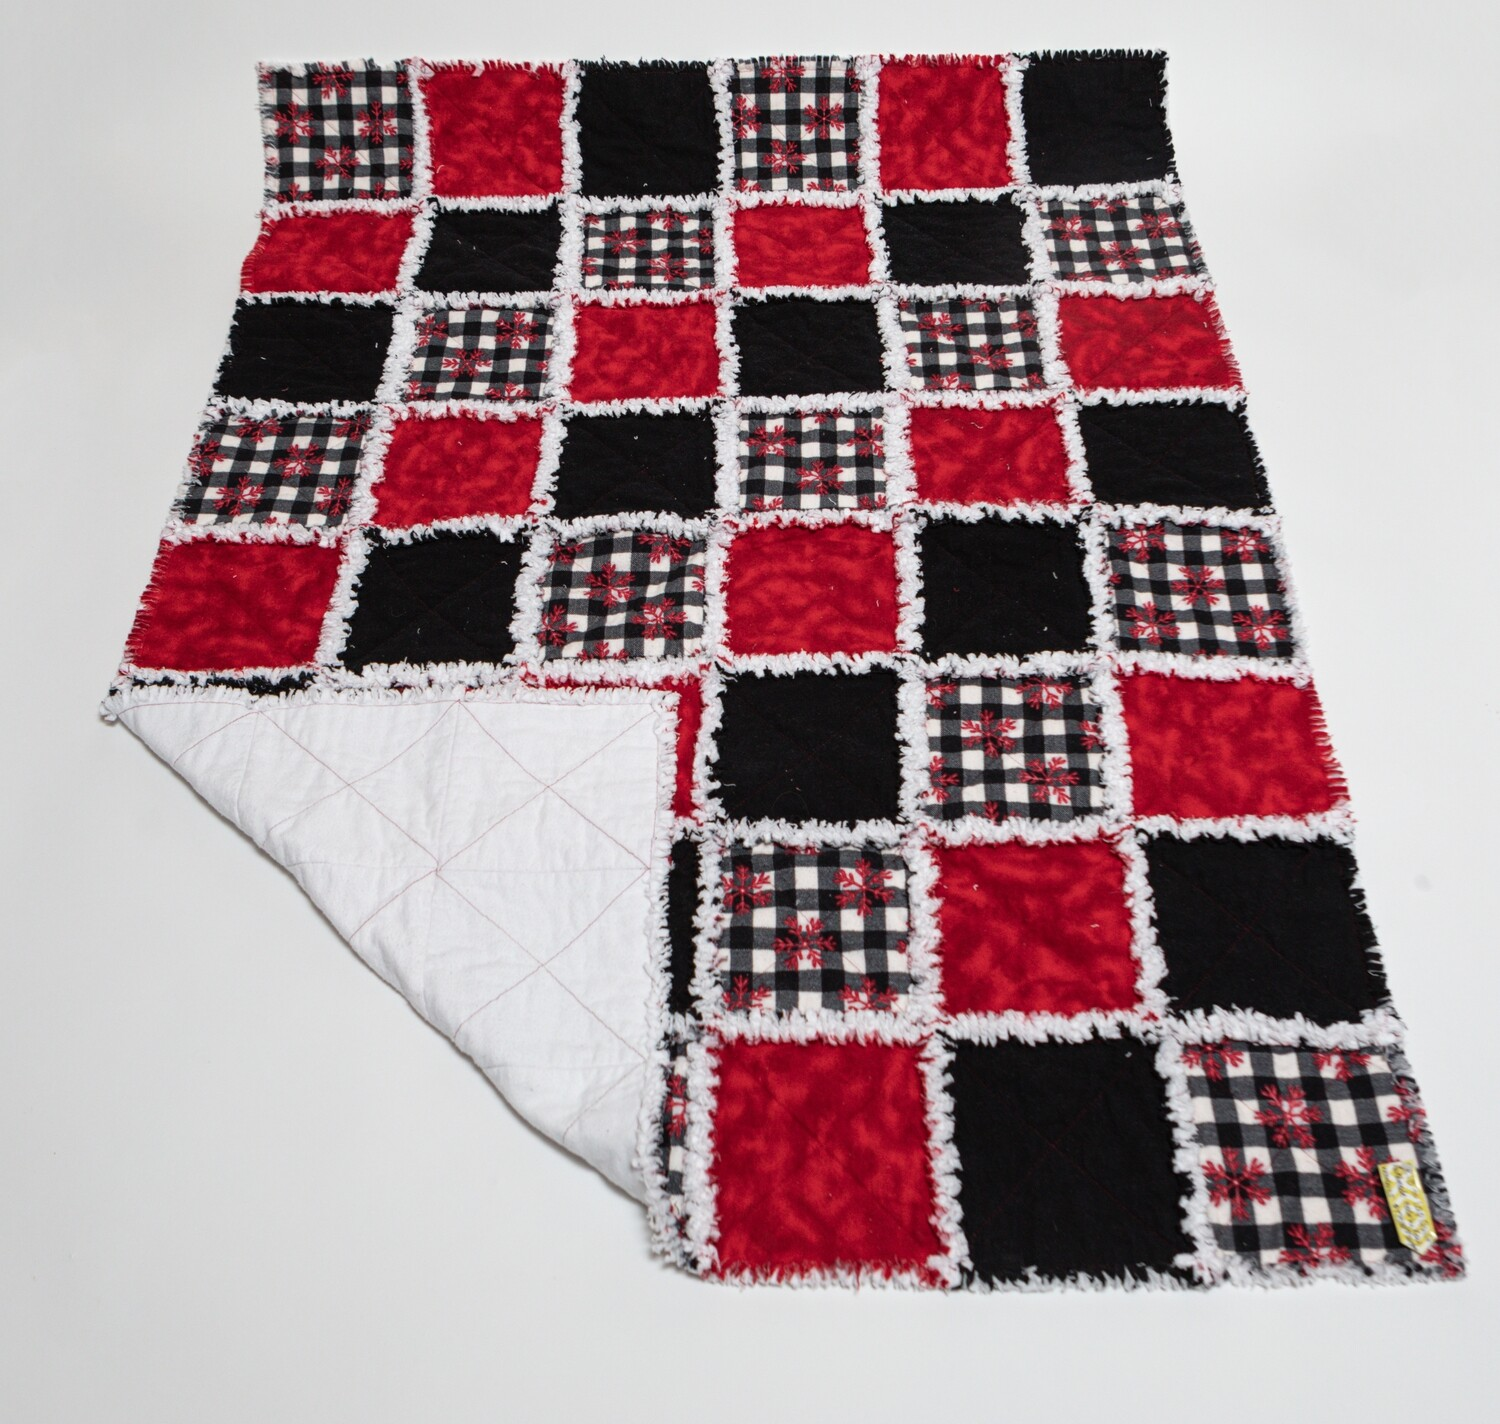 Crib Quilt Red/Black/ White Plaid and Snowflakes